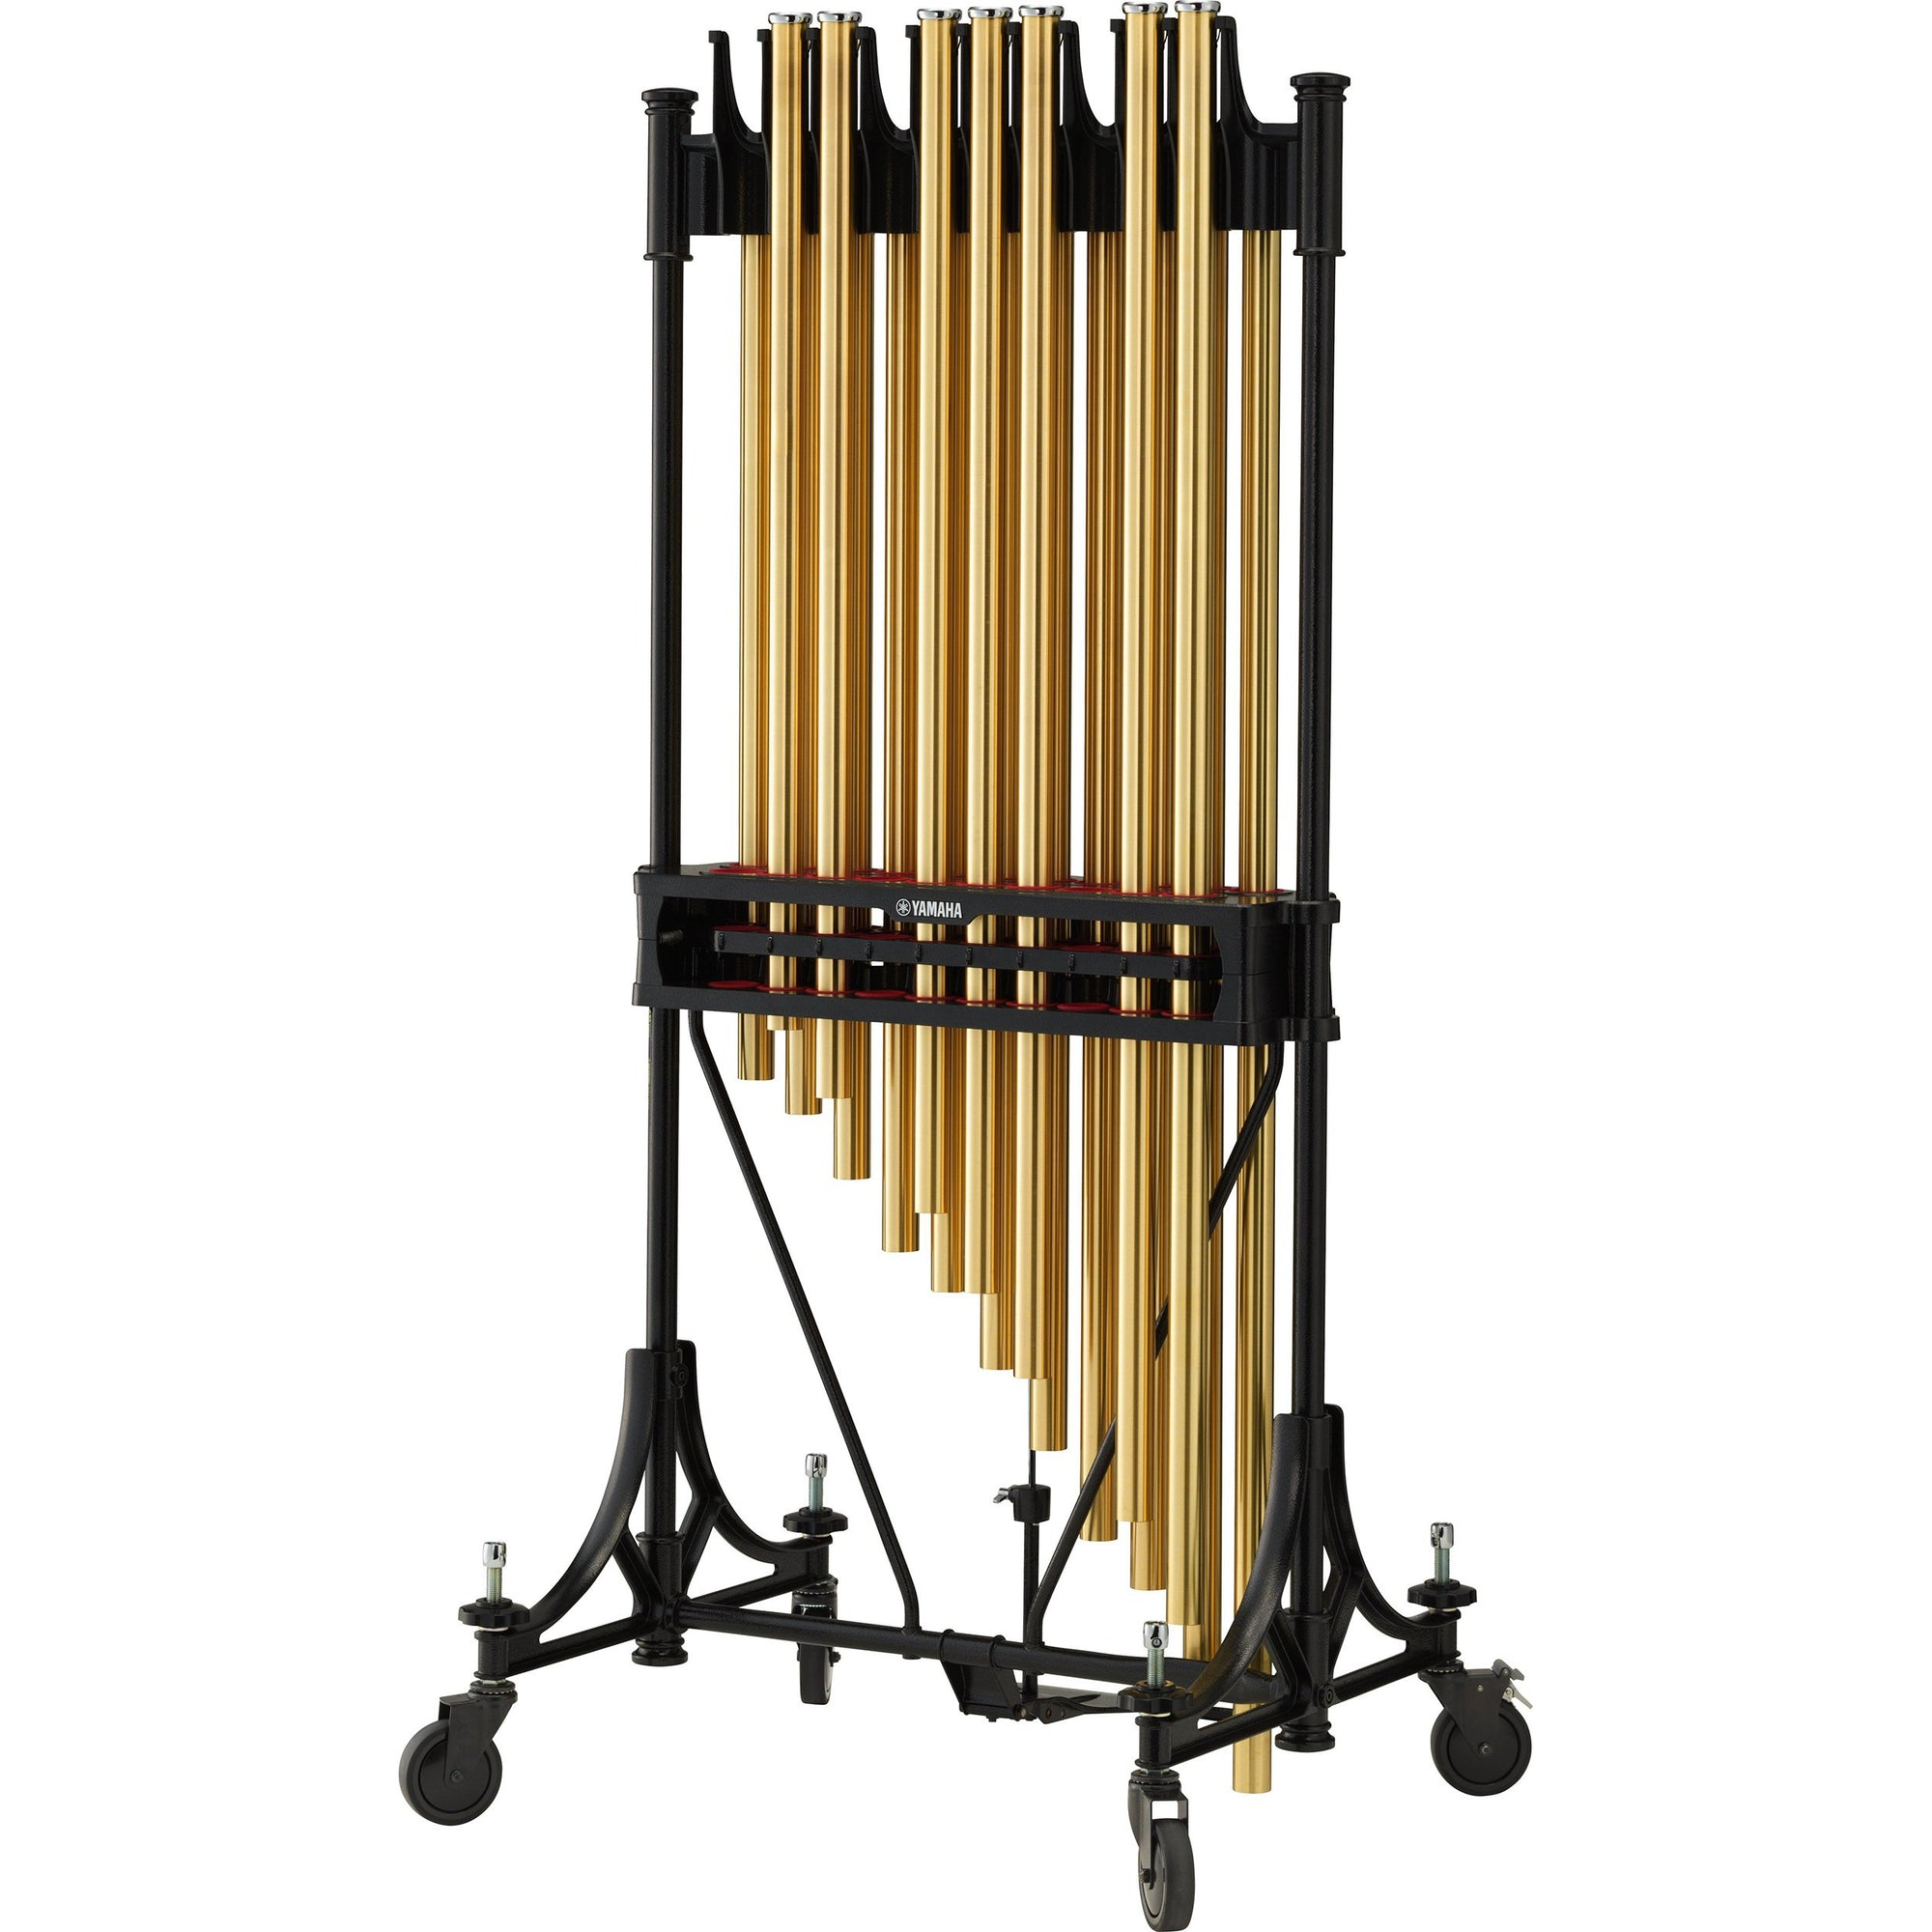 Yamaha - YCH-7018 - Chimes-Percussion-Yamaha-Music Elements